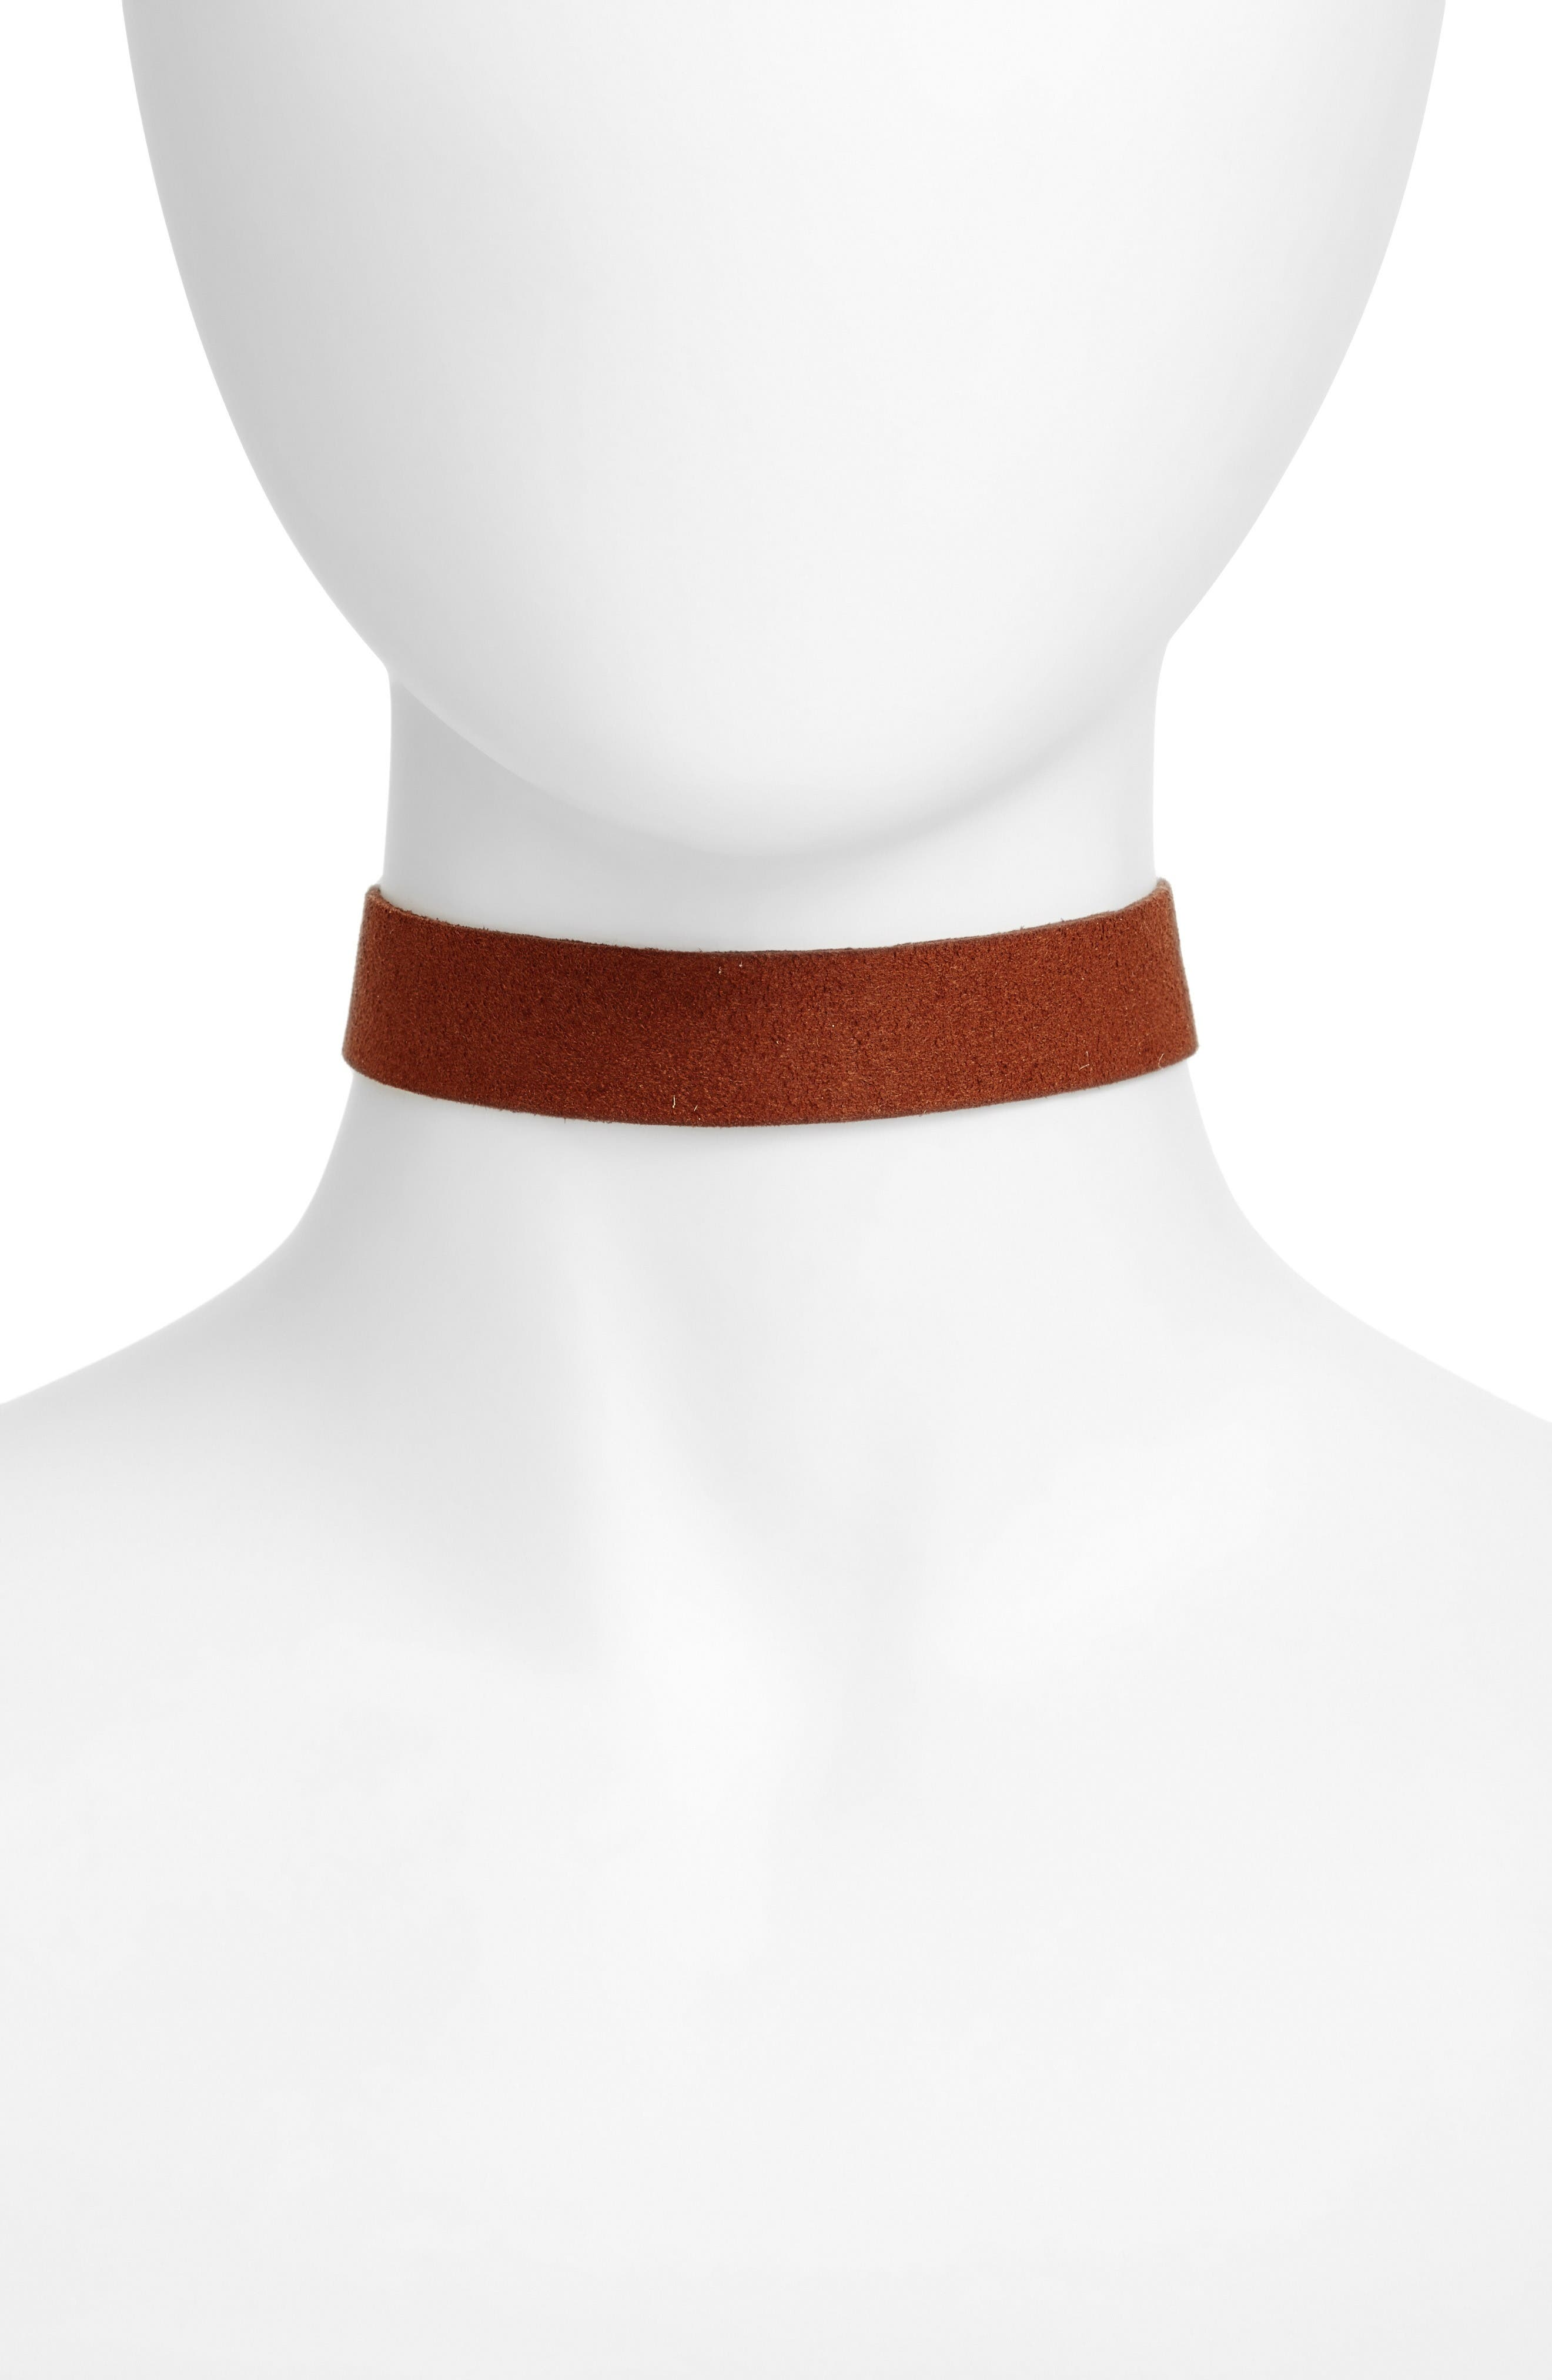 Orion Faux Suede Choker,                         Main,                         color, Gold/ Brown